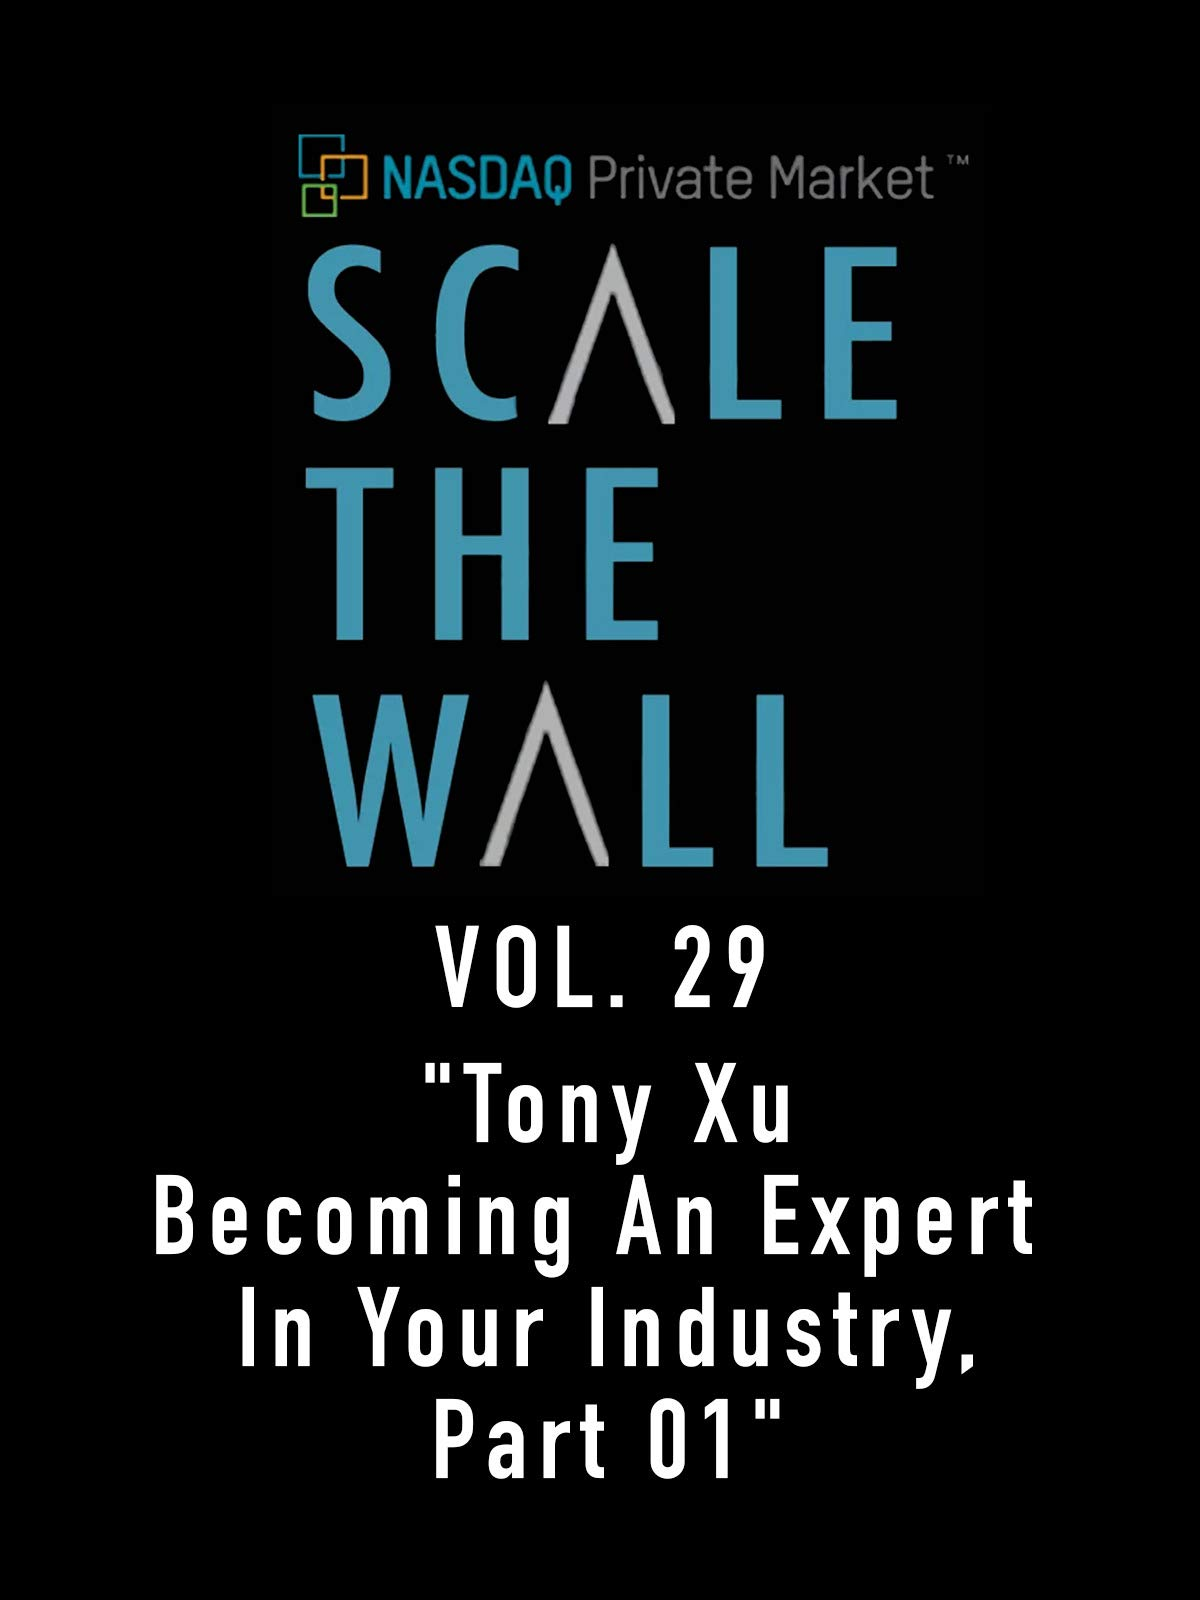 Scale the Wall Vol. 29